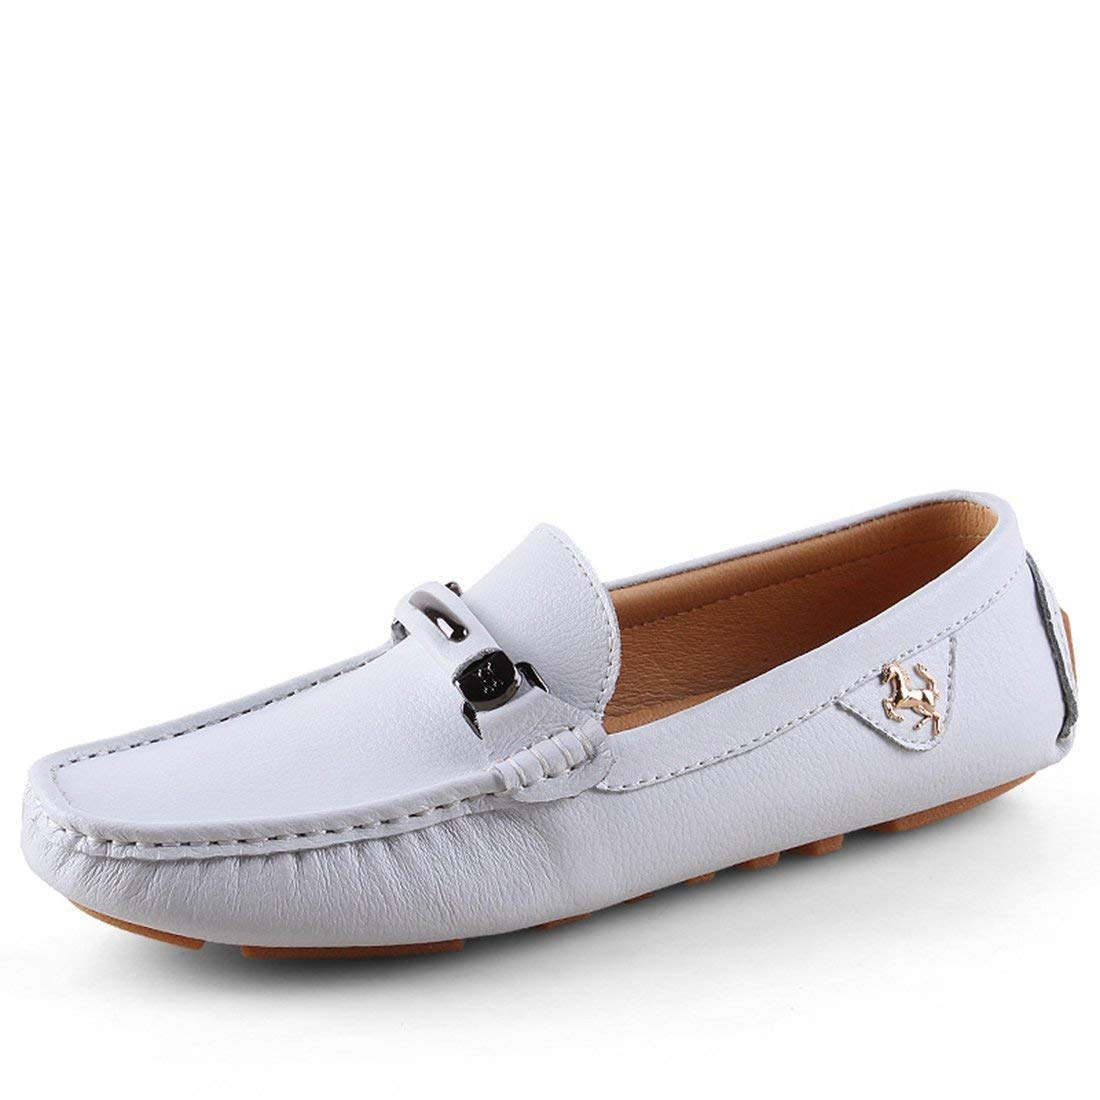 White Qiusa Boy's Men's Bows Stitched Slip-on Classic Spring Summer Loafers (color   Dark bluee, Size   9.5 UK)